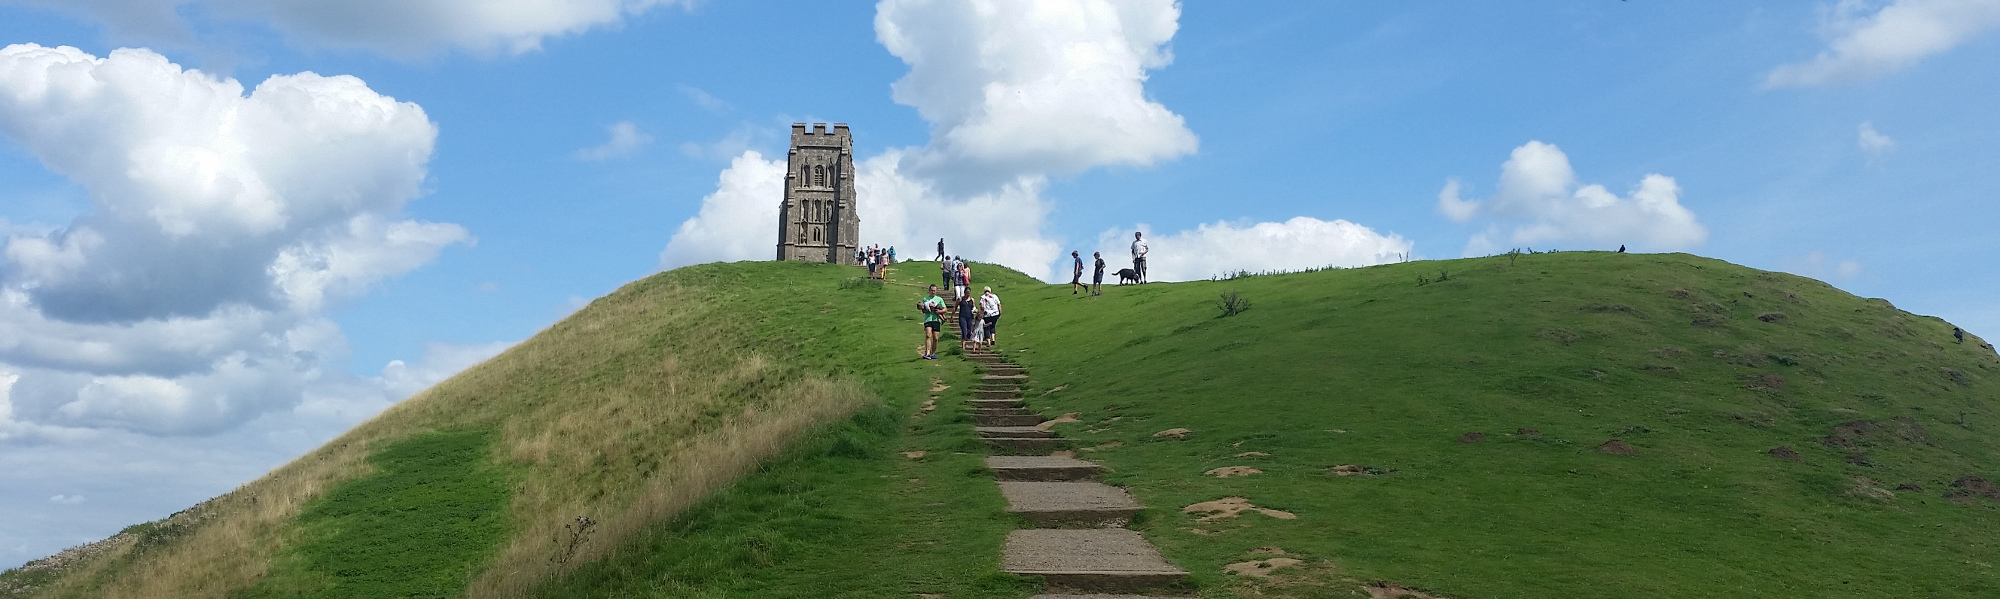 Looking up to Glastonbury Tor